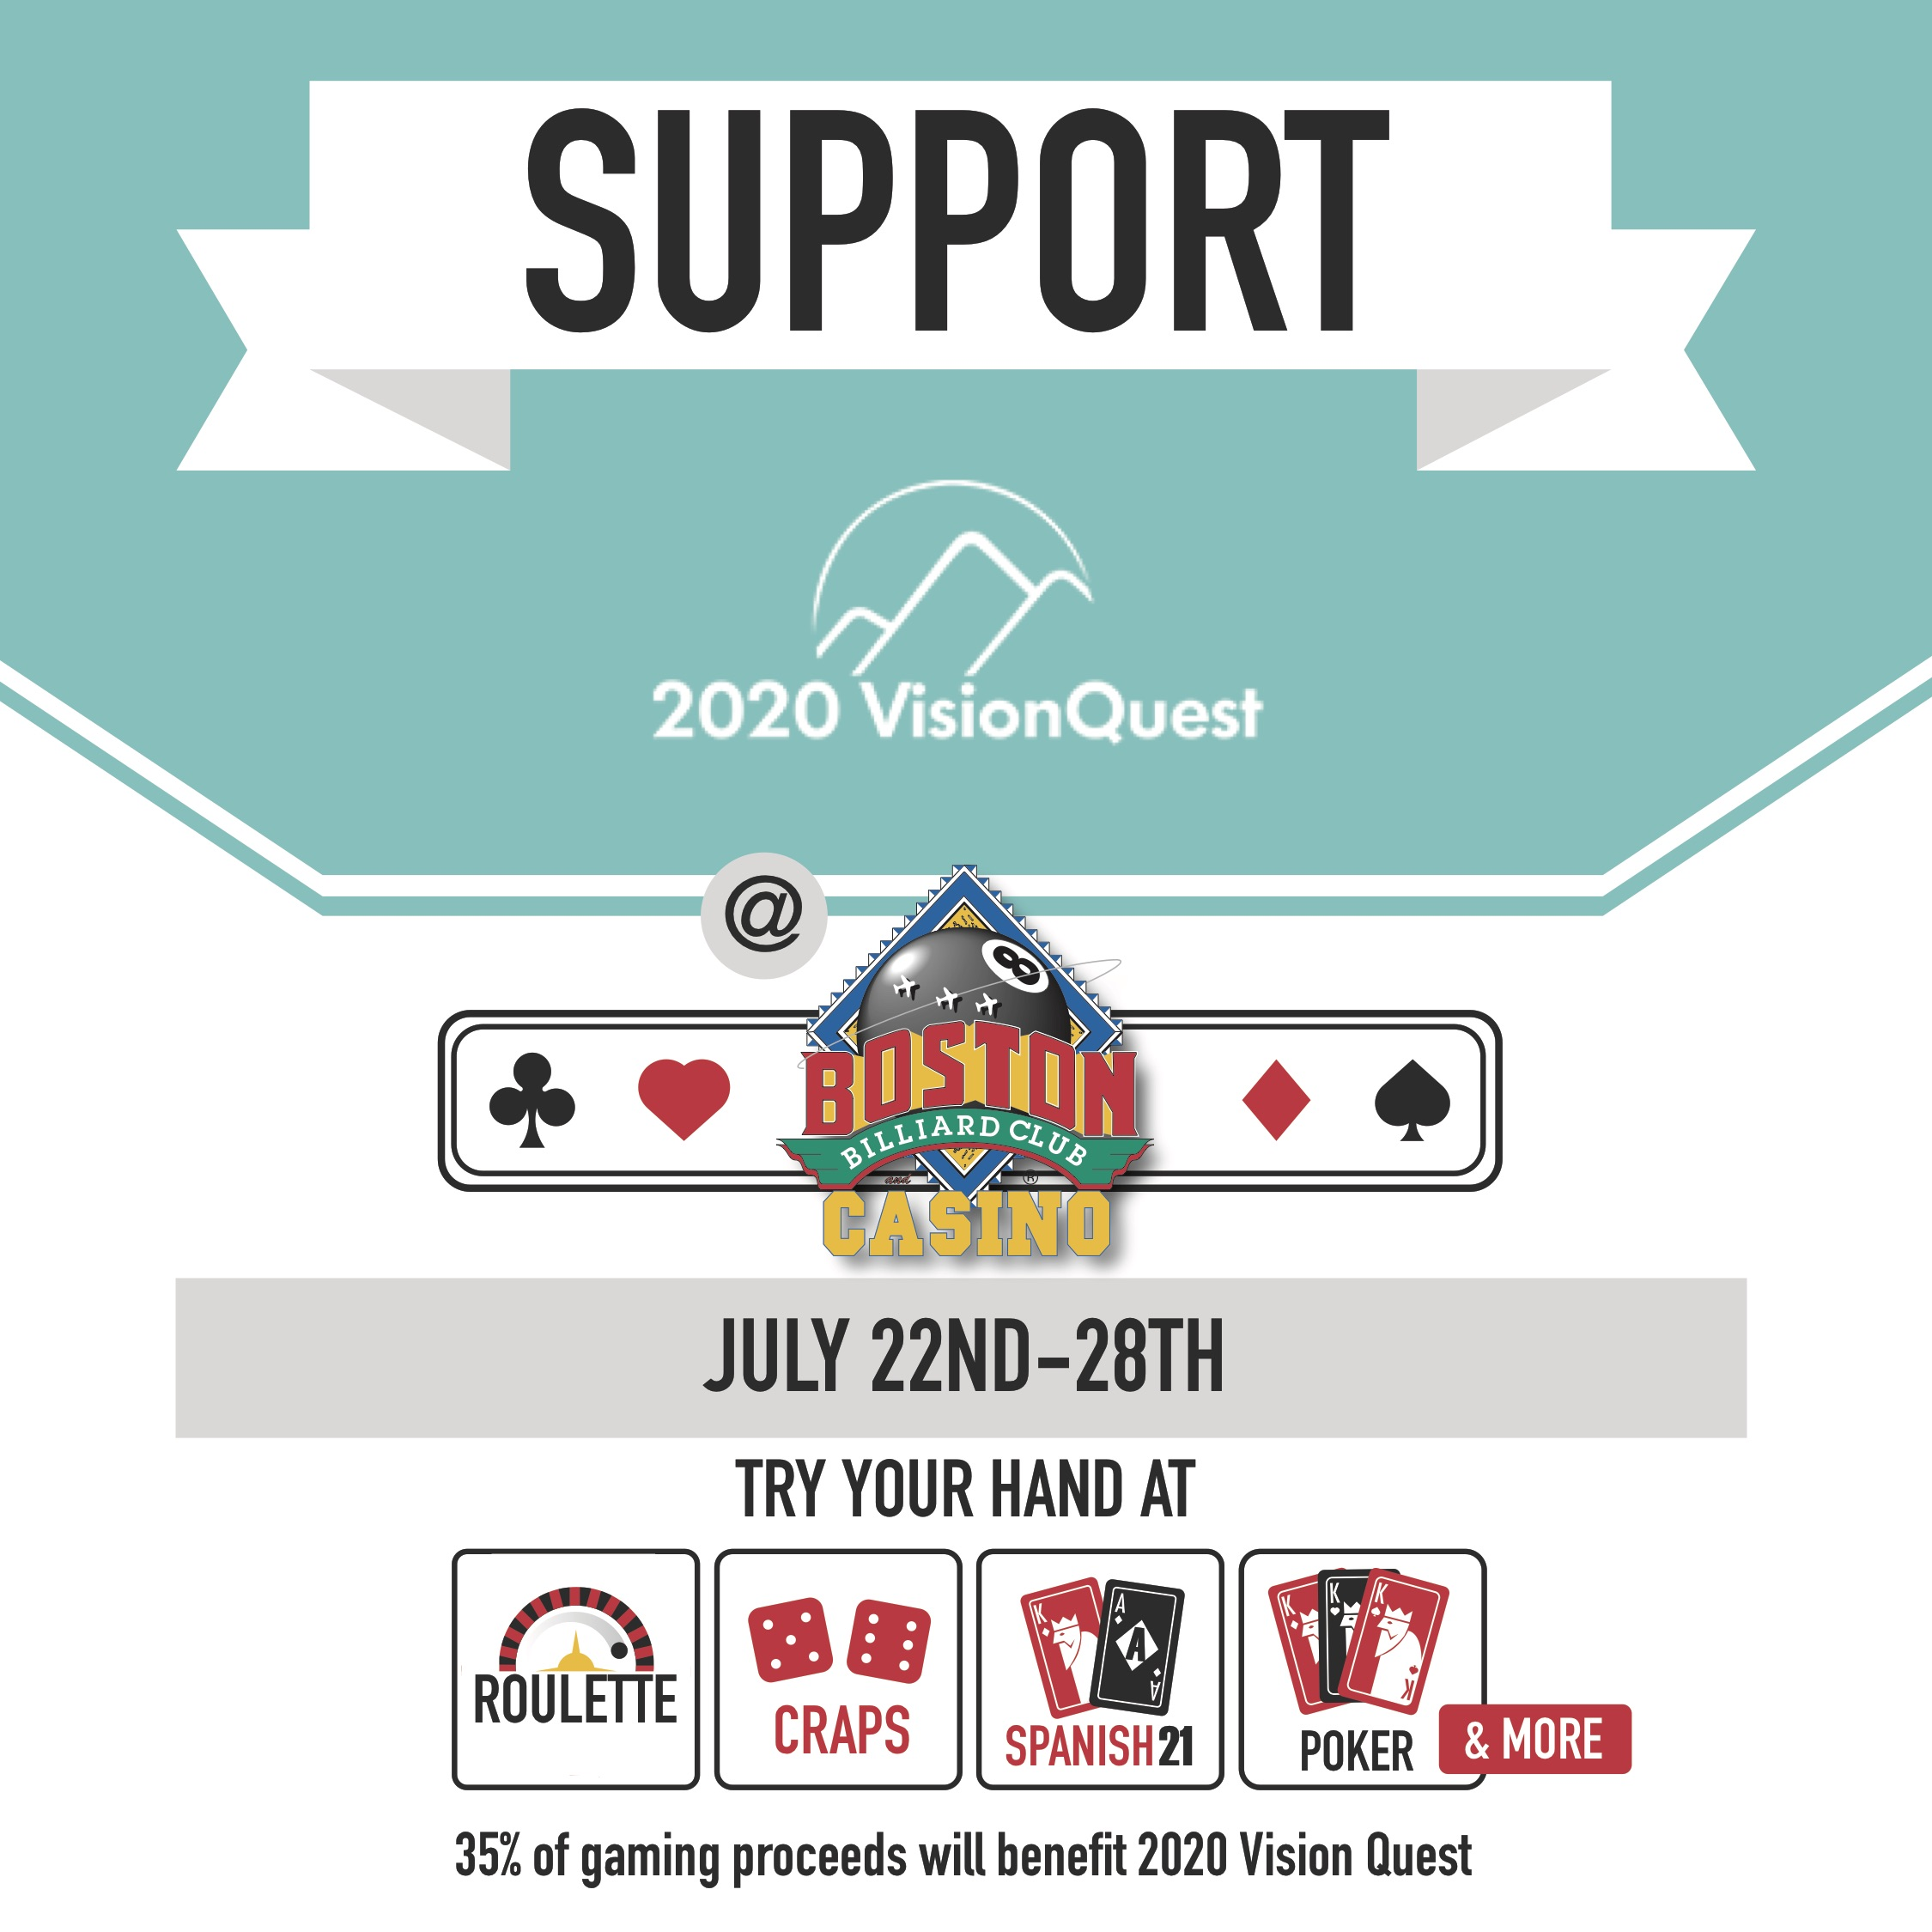 Boston Billiard's Poster for supporting 2020 Vision Quest